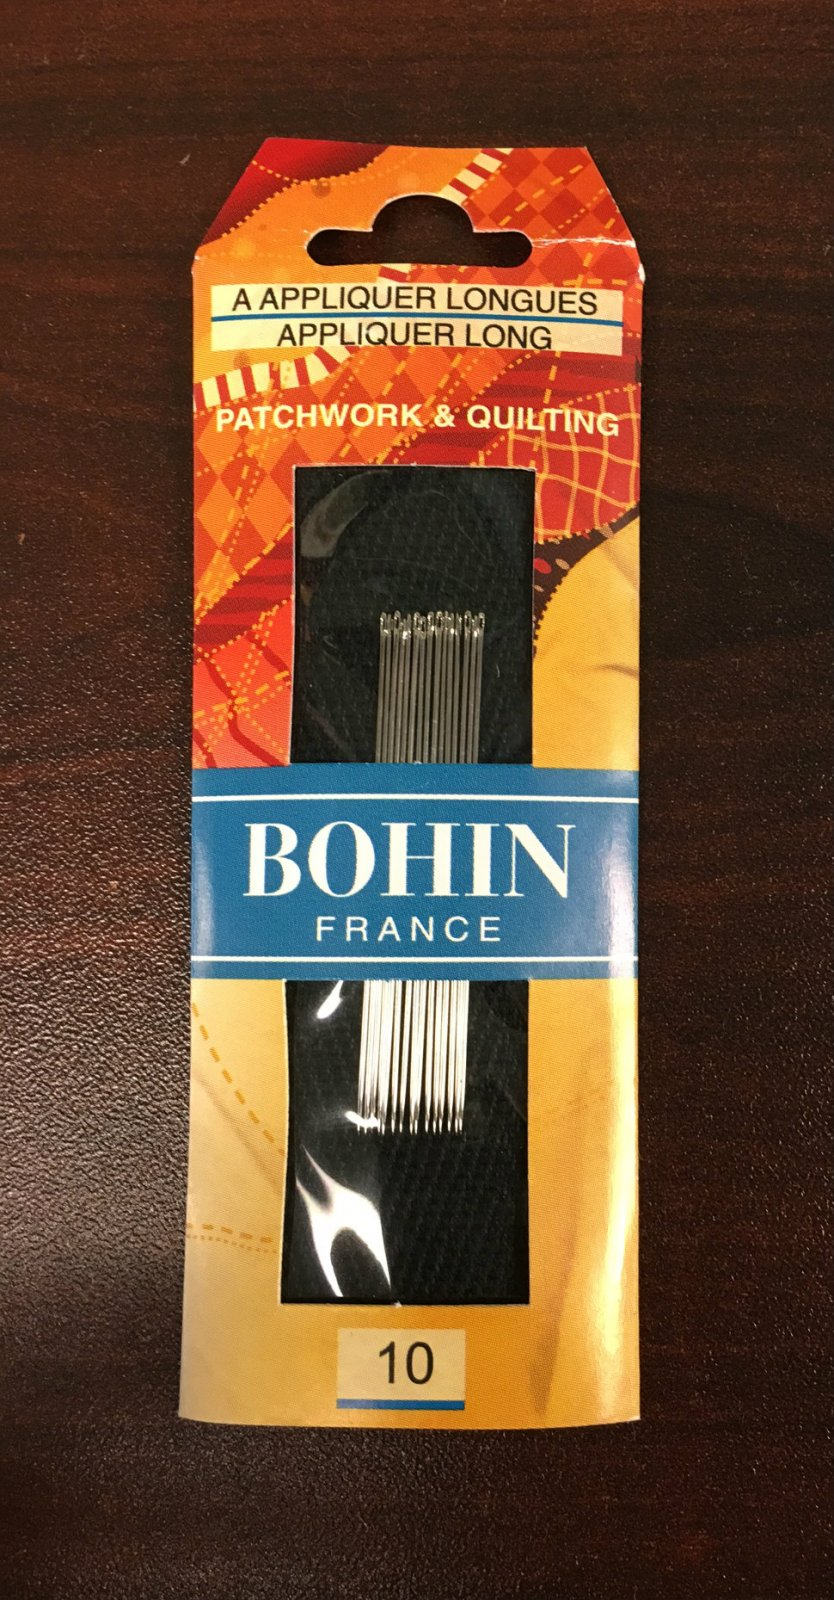 Bohin Applique Long / Beading Needles Size 10